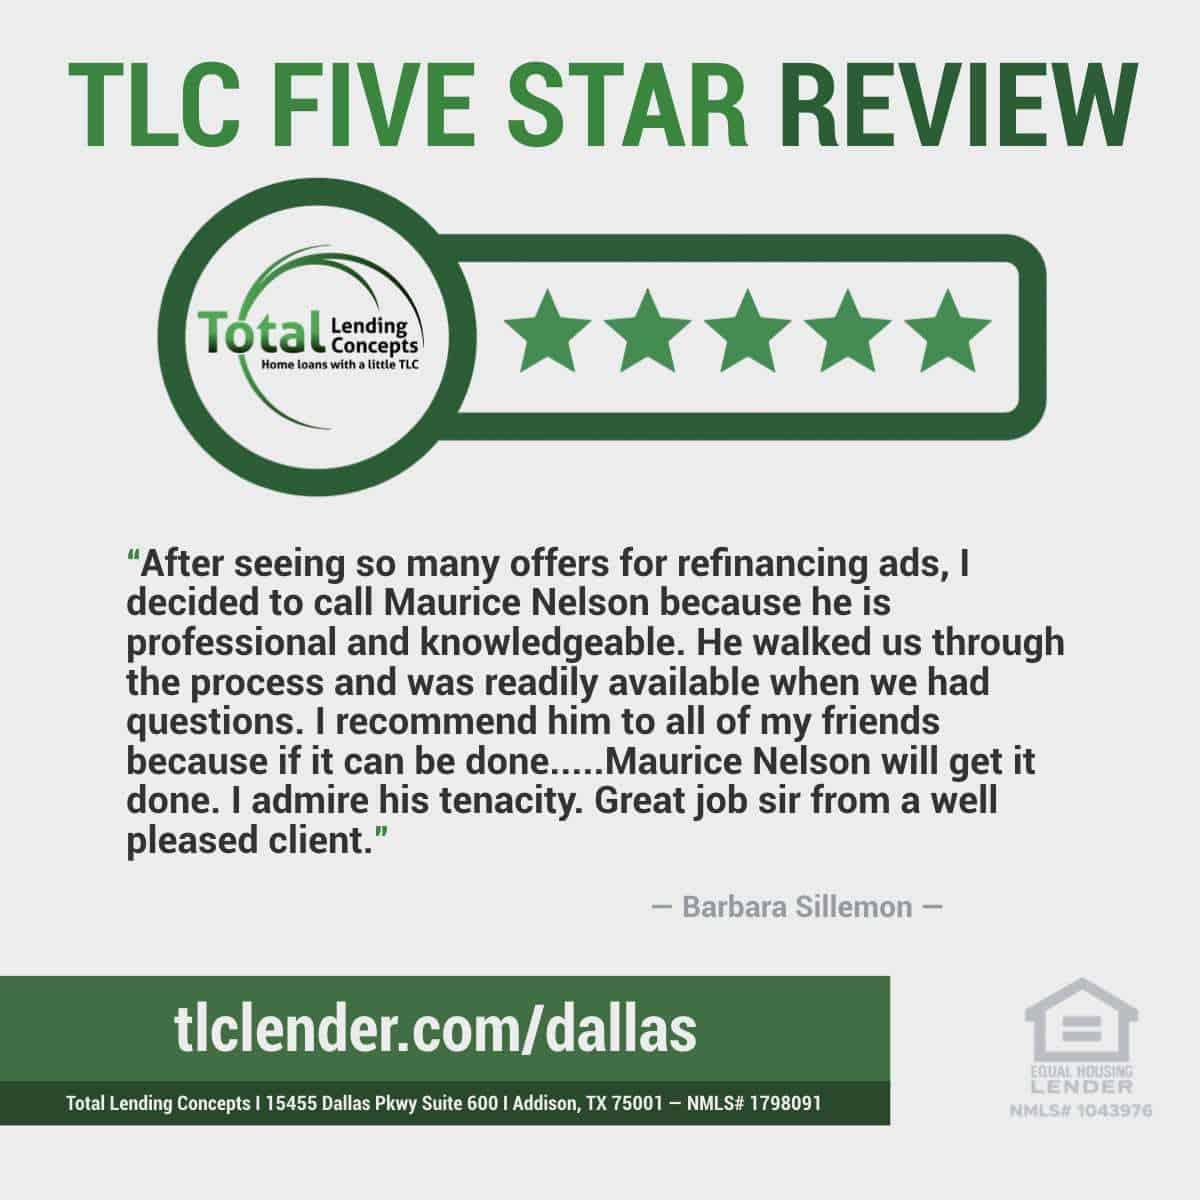 Total-Lending-Concepts-Five-Star-Review-Barbara-Sillemon-in-Addison-Texas-for-Maurice-Nelson-Home-Mortgage